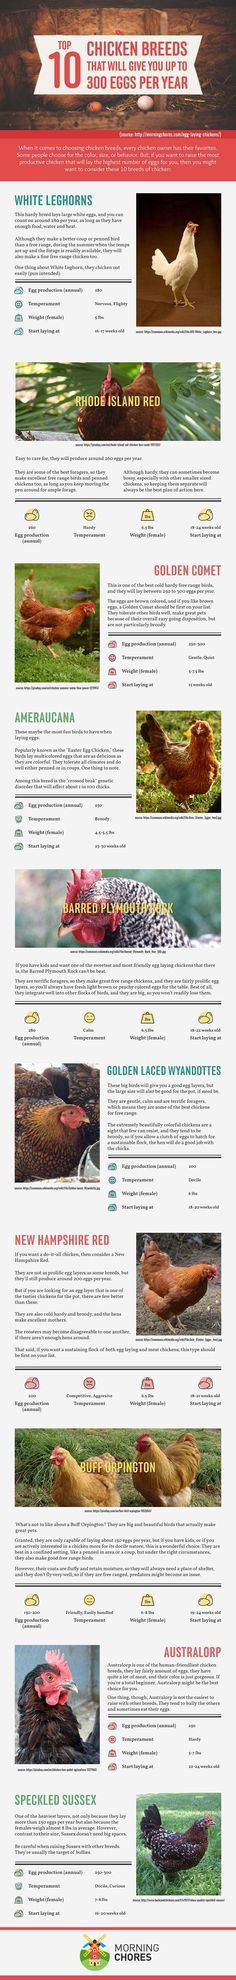 10 Best Egg Laying Chicken Breeds (up to 300 per Year!) 10 Best Egg Laying Chicken Breeds (up to 300 per Year!)<br> Make sure you're not raising the wrong hen. Here's 10 of the best egg laying chicken breeds that will give you up to 300 eggs per year. Best Egg Laying Chickens, Keeping Chickens, Raising Chickens, Raising Goats, Laying Hens, Chicken Life, Chicken Eggs, Chicken Houses, Fresh Chicken